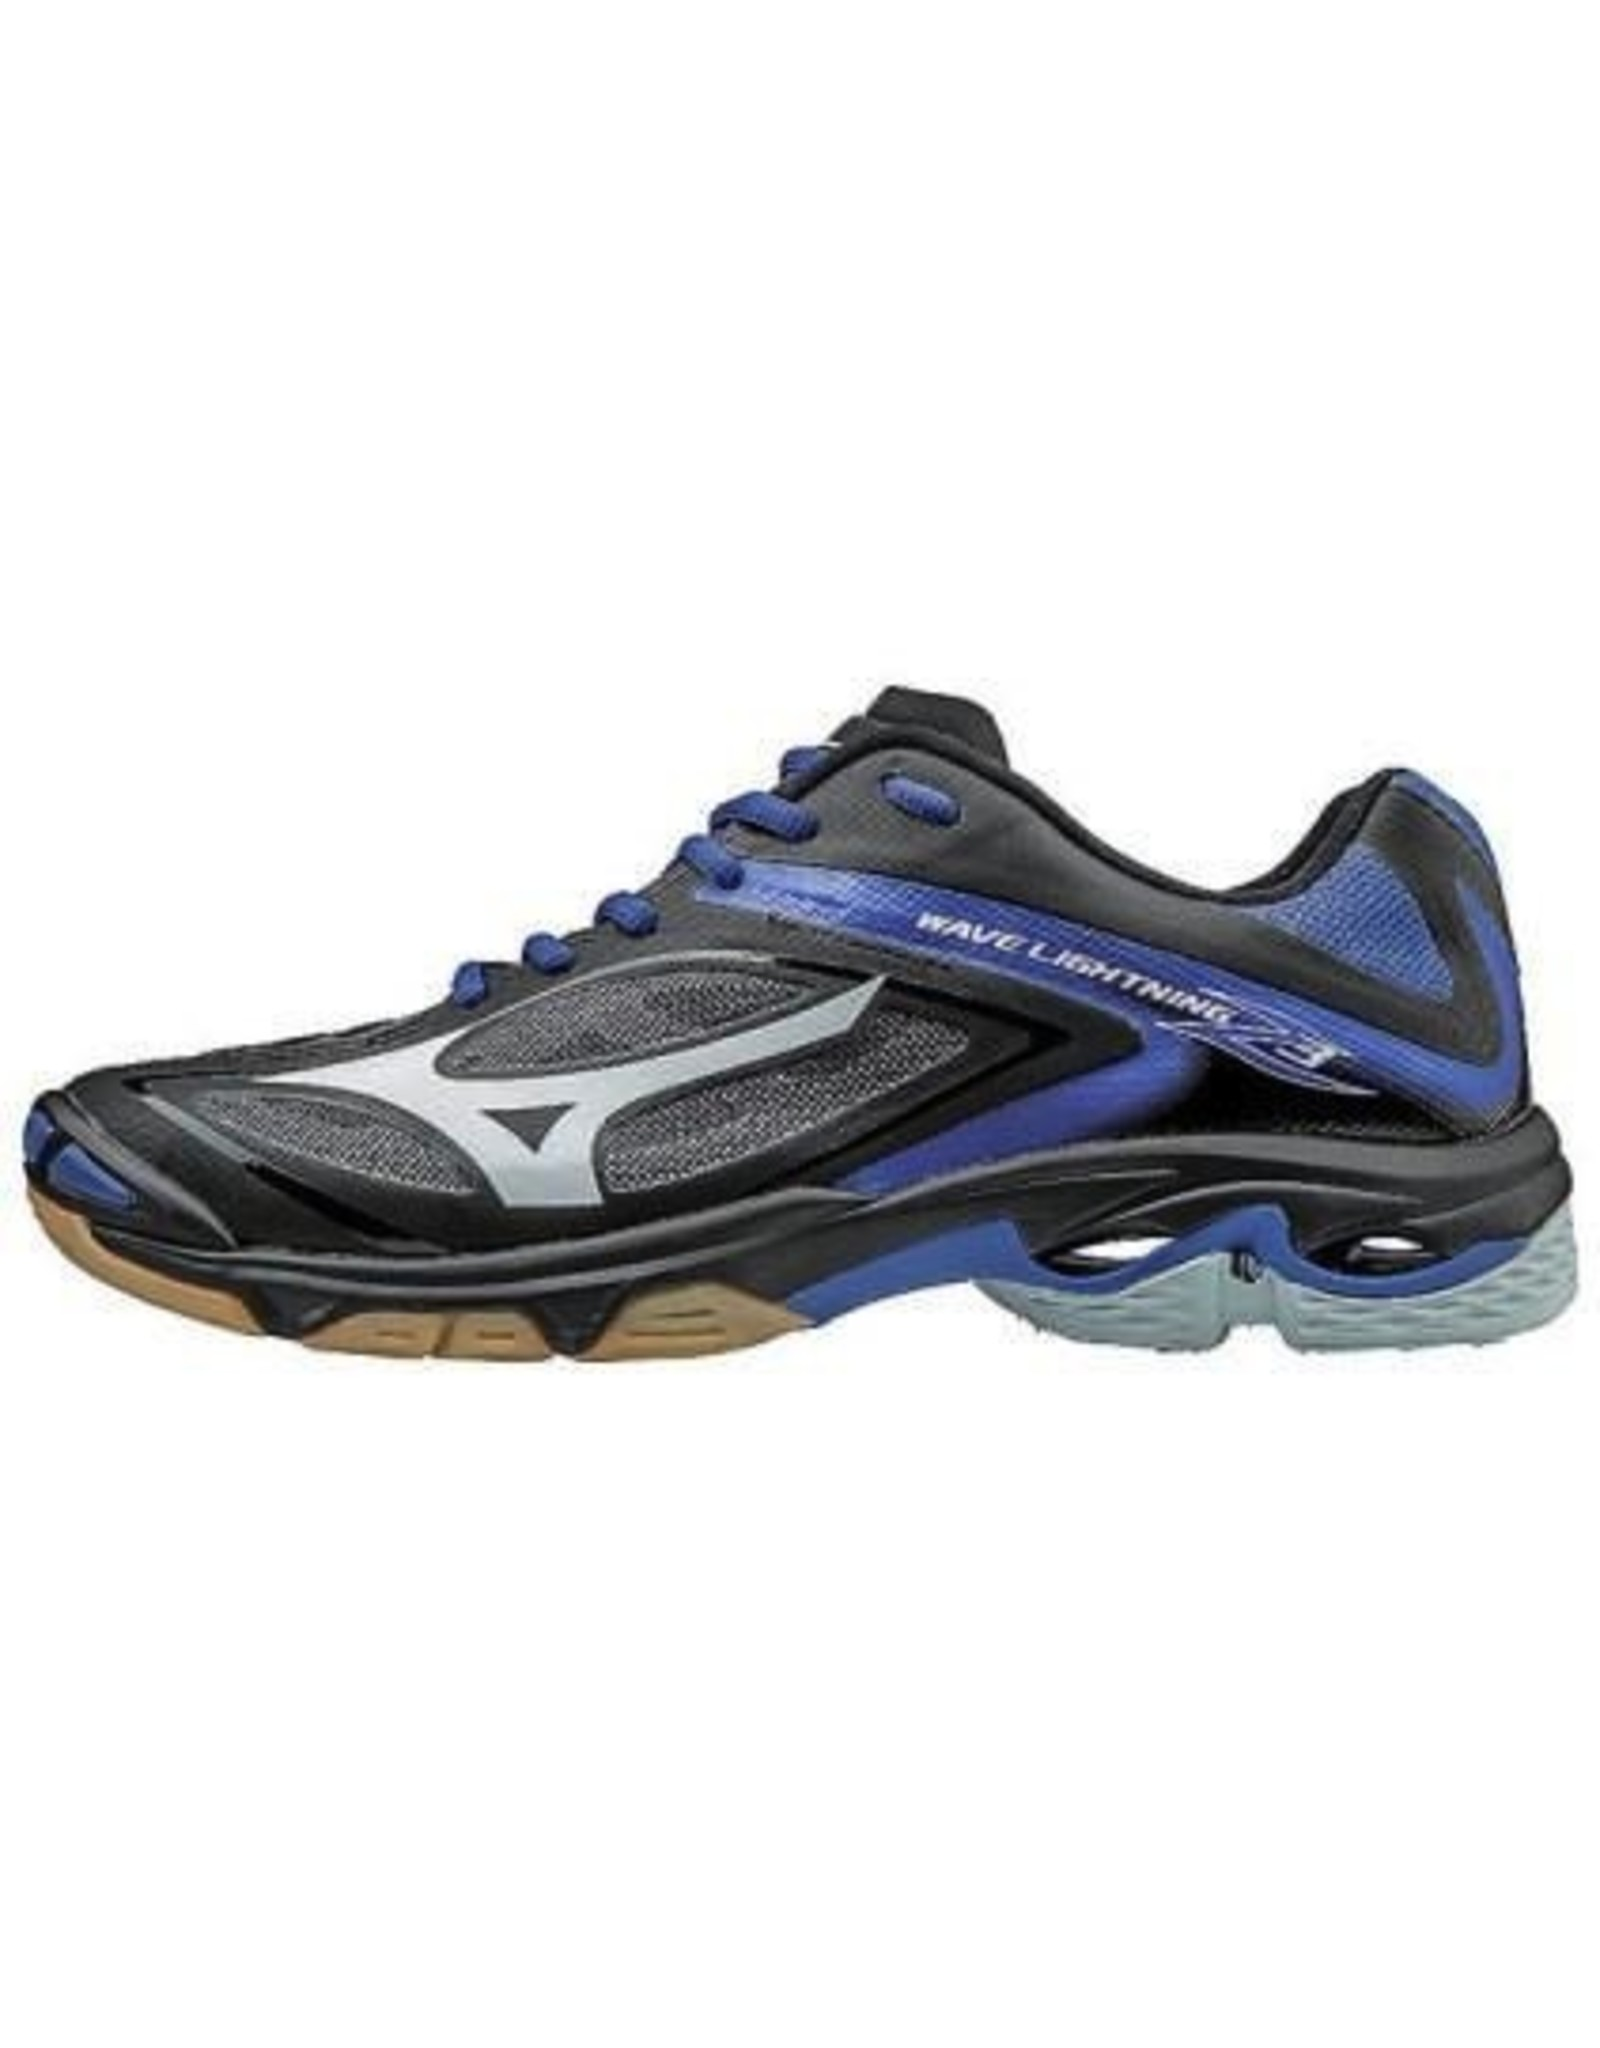 Mizuno The newest model of our classic Lightning shoe offered in a low-cut model. Updated with a better fit, you will feel more supported through your quick movements side to side. The new outsole with the Dura Shield feature was designed with your hitting appro